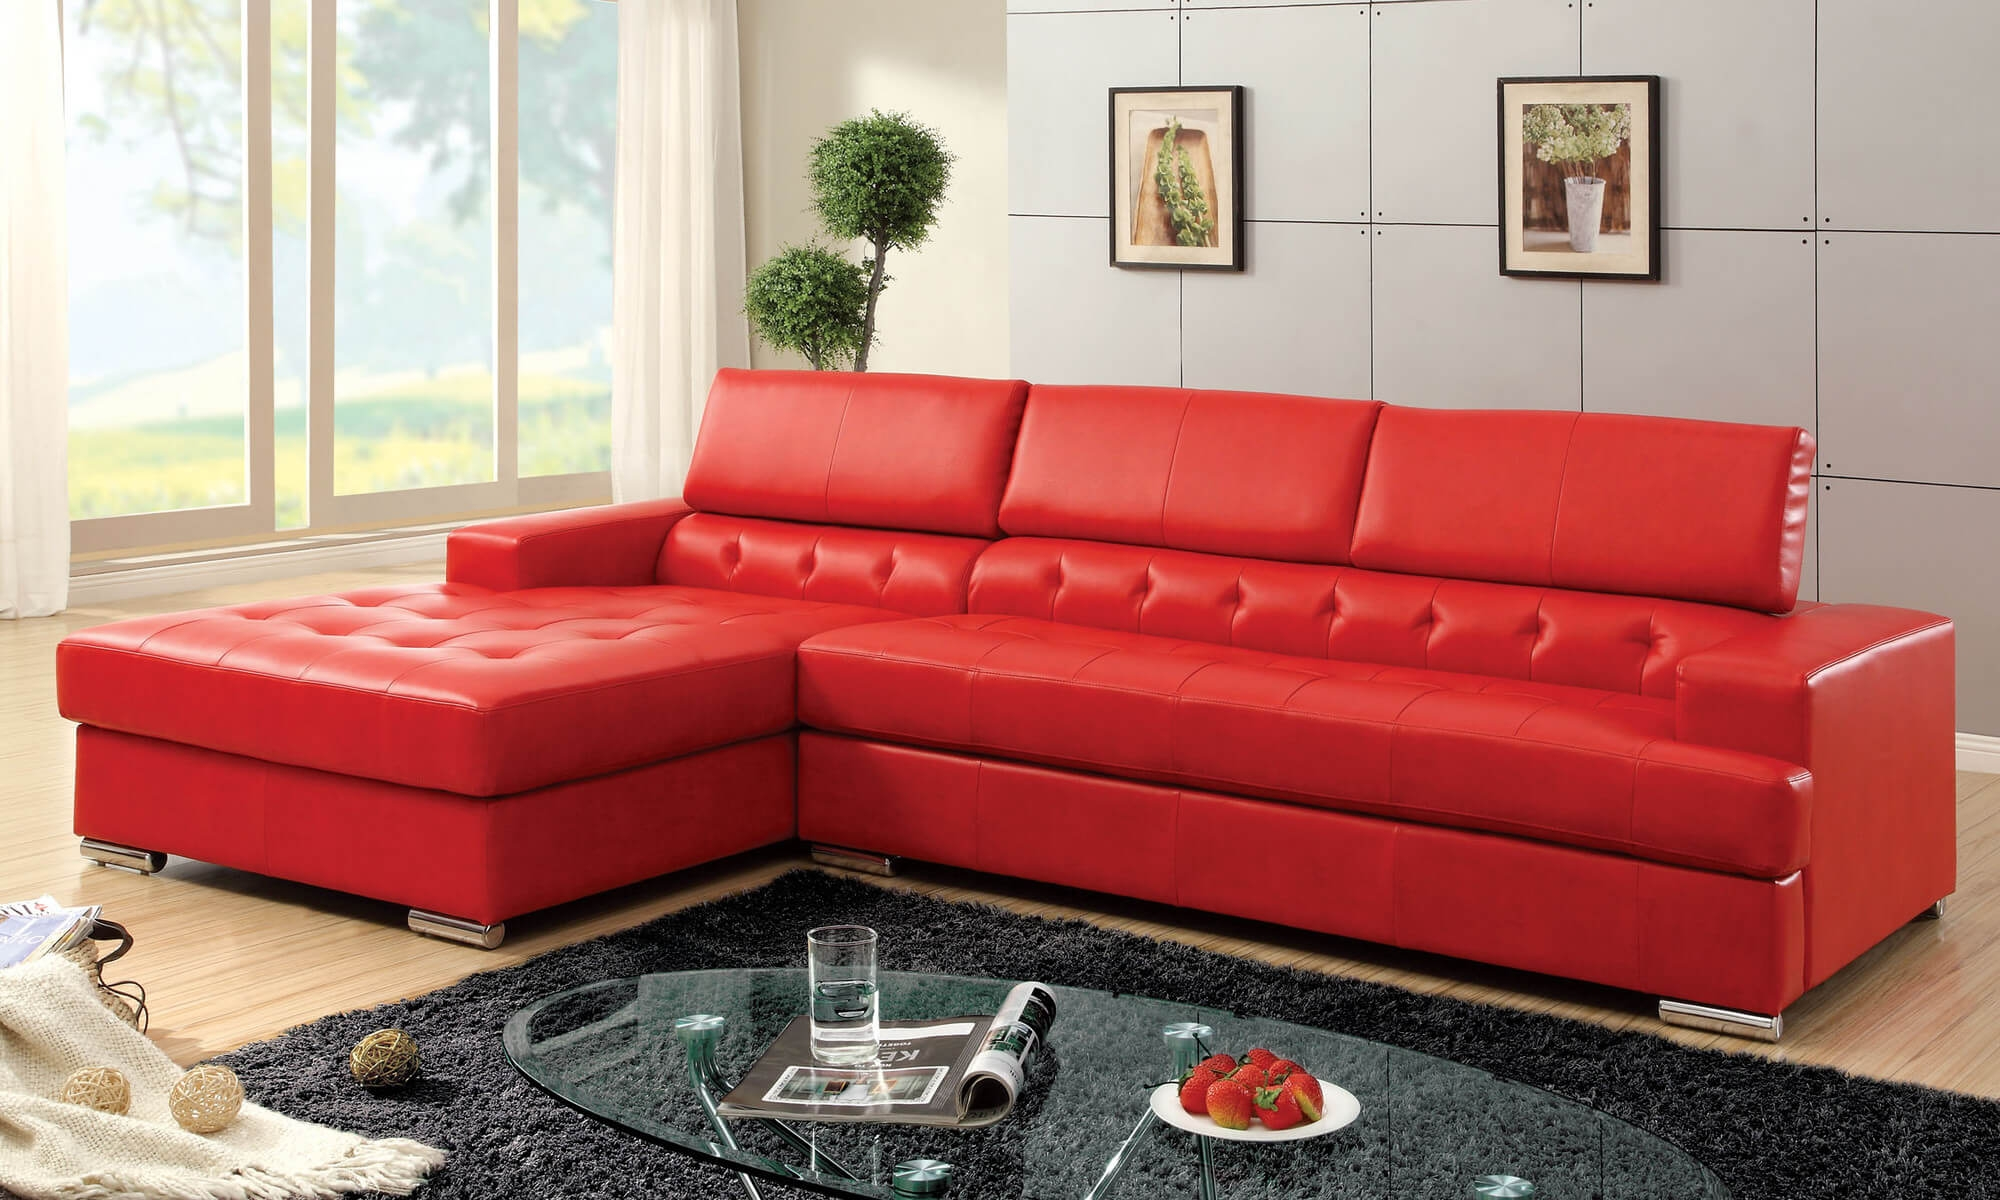 12 Ideas of Contemporary Black Leather Sectional Sofa Left Side Chaise